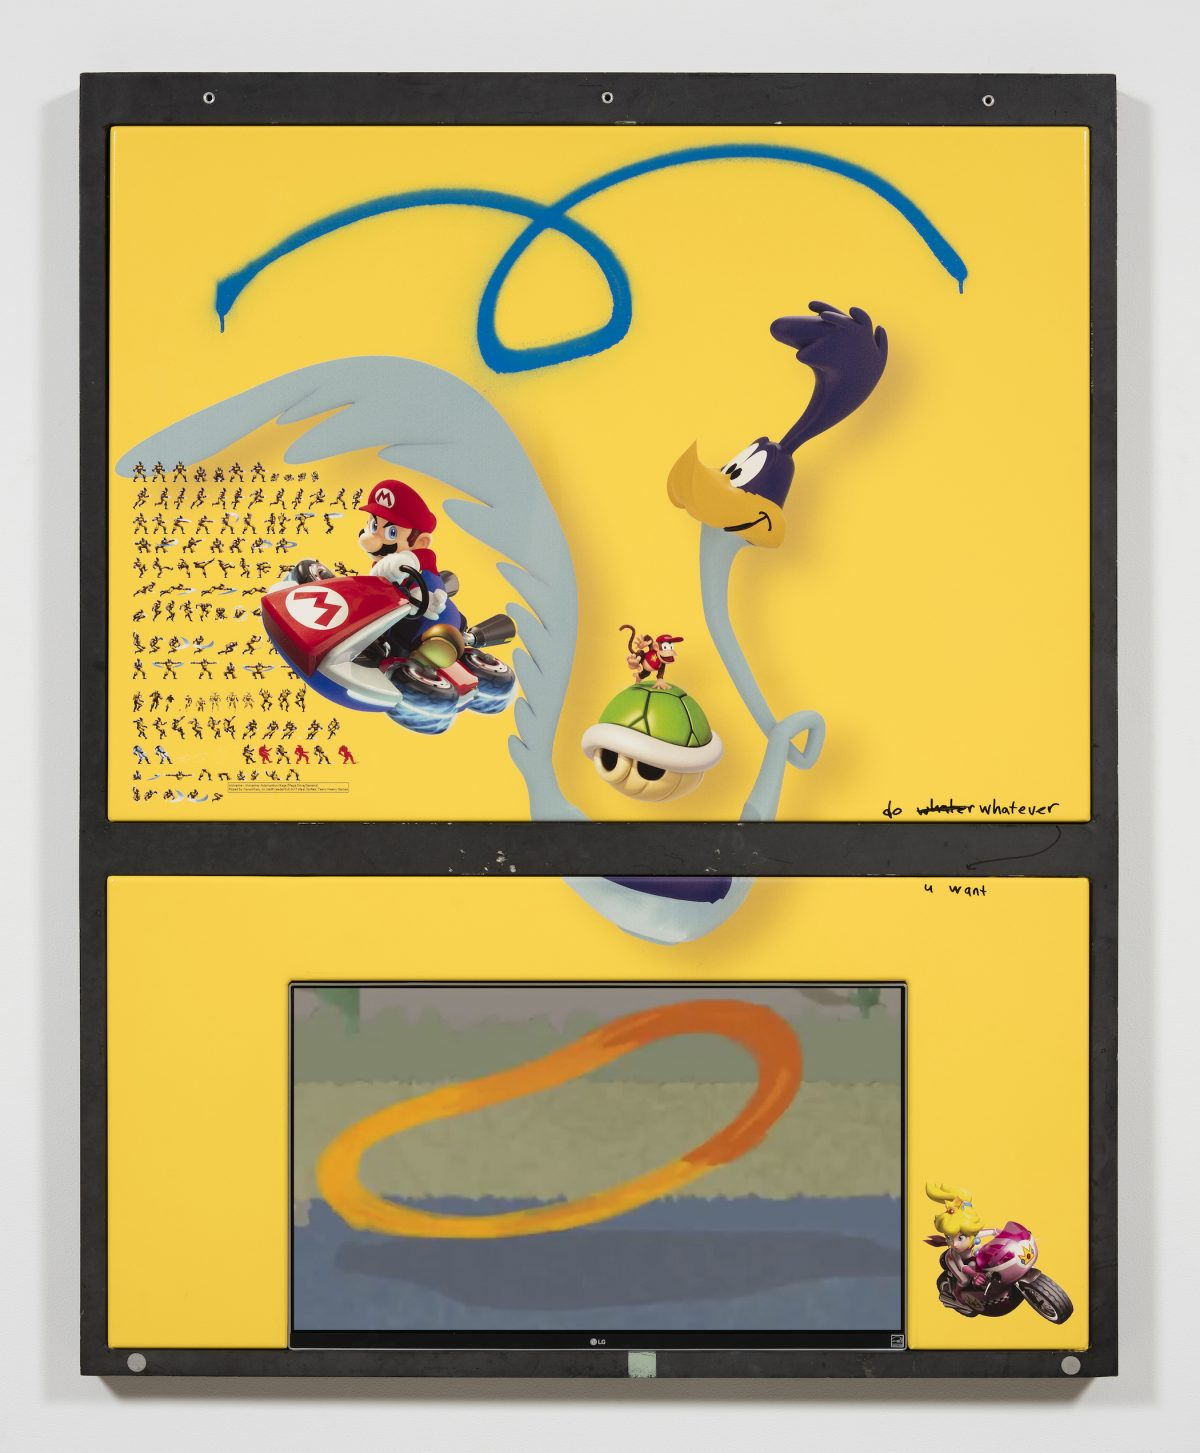 Yung Jake. <em>roadrunner (w mario, princess peach, diddy kong and wolverine)</em>, 2017. UV print, spray paint, tape and ink on powder coated steel, found metal and monitor, 51 x 40 1/2 inches